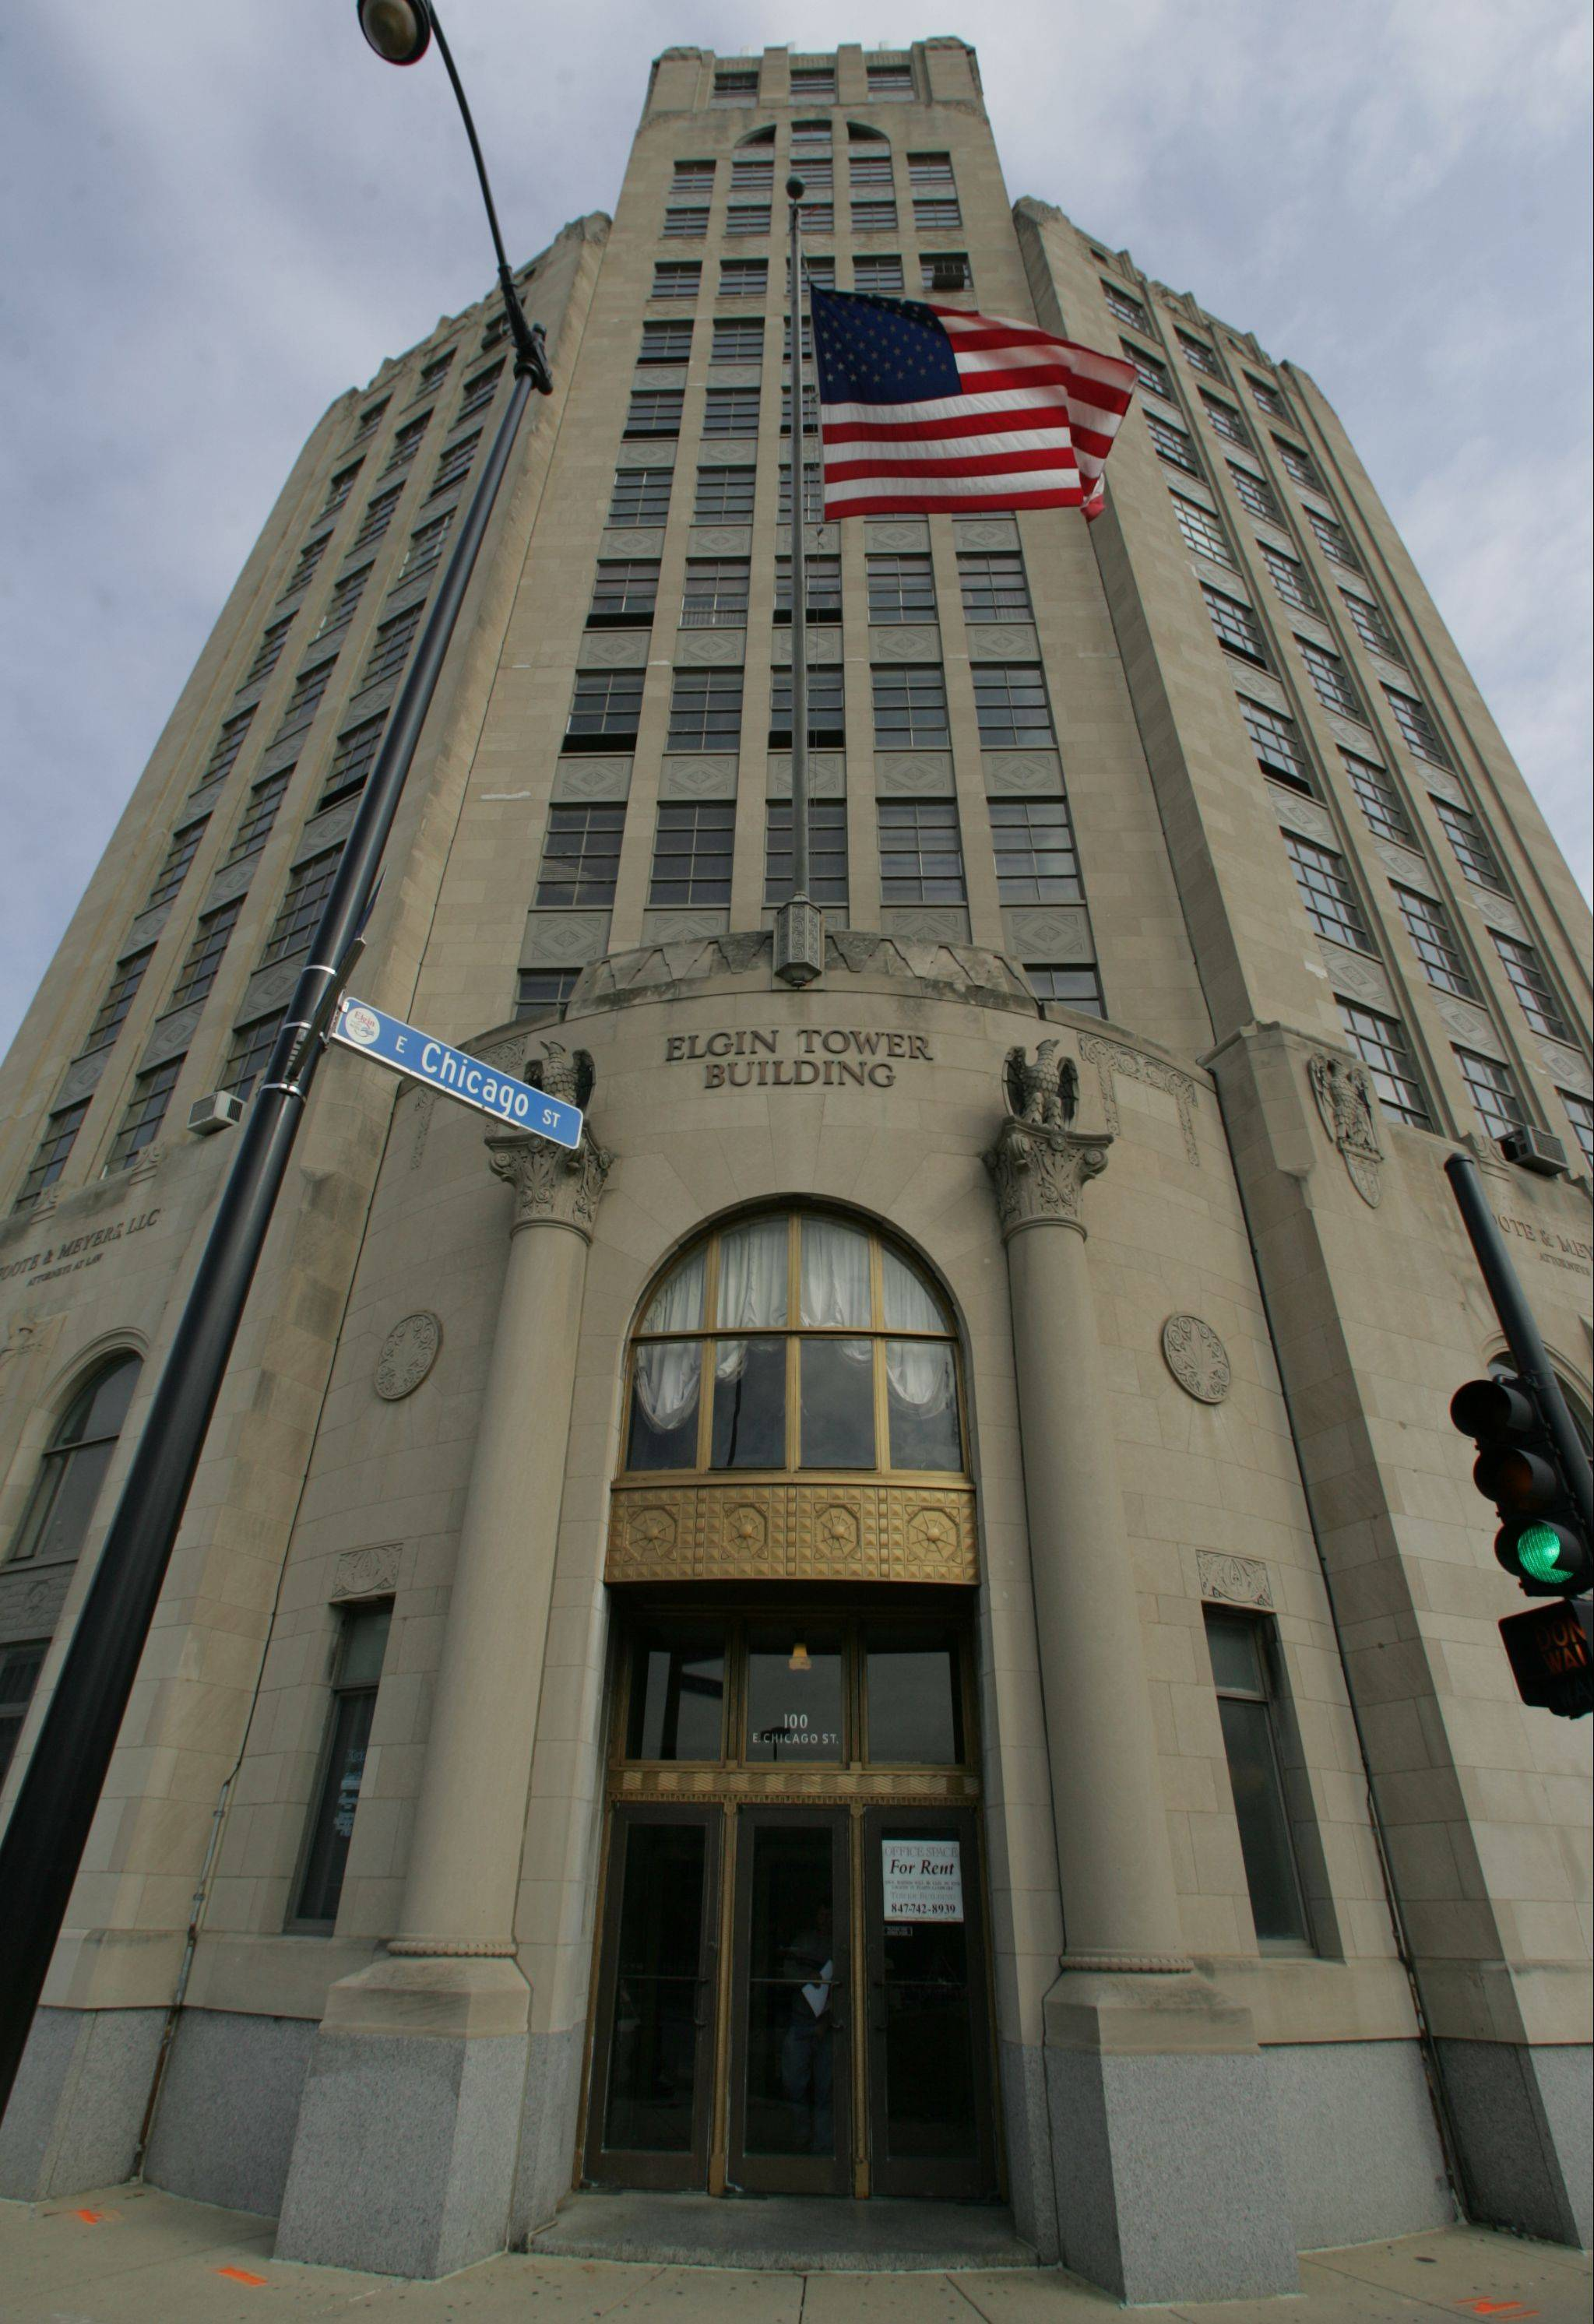 Gorman & Co. entered into an agreement to buy the Elgin Tower Building.